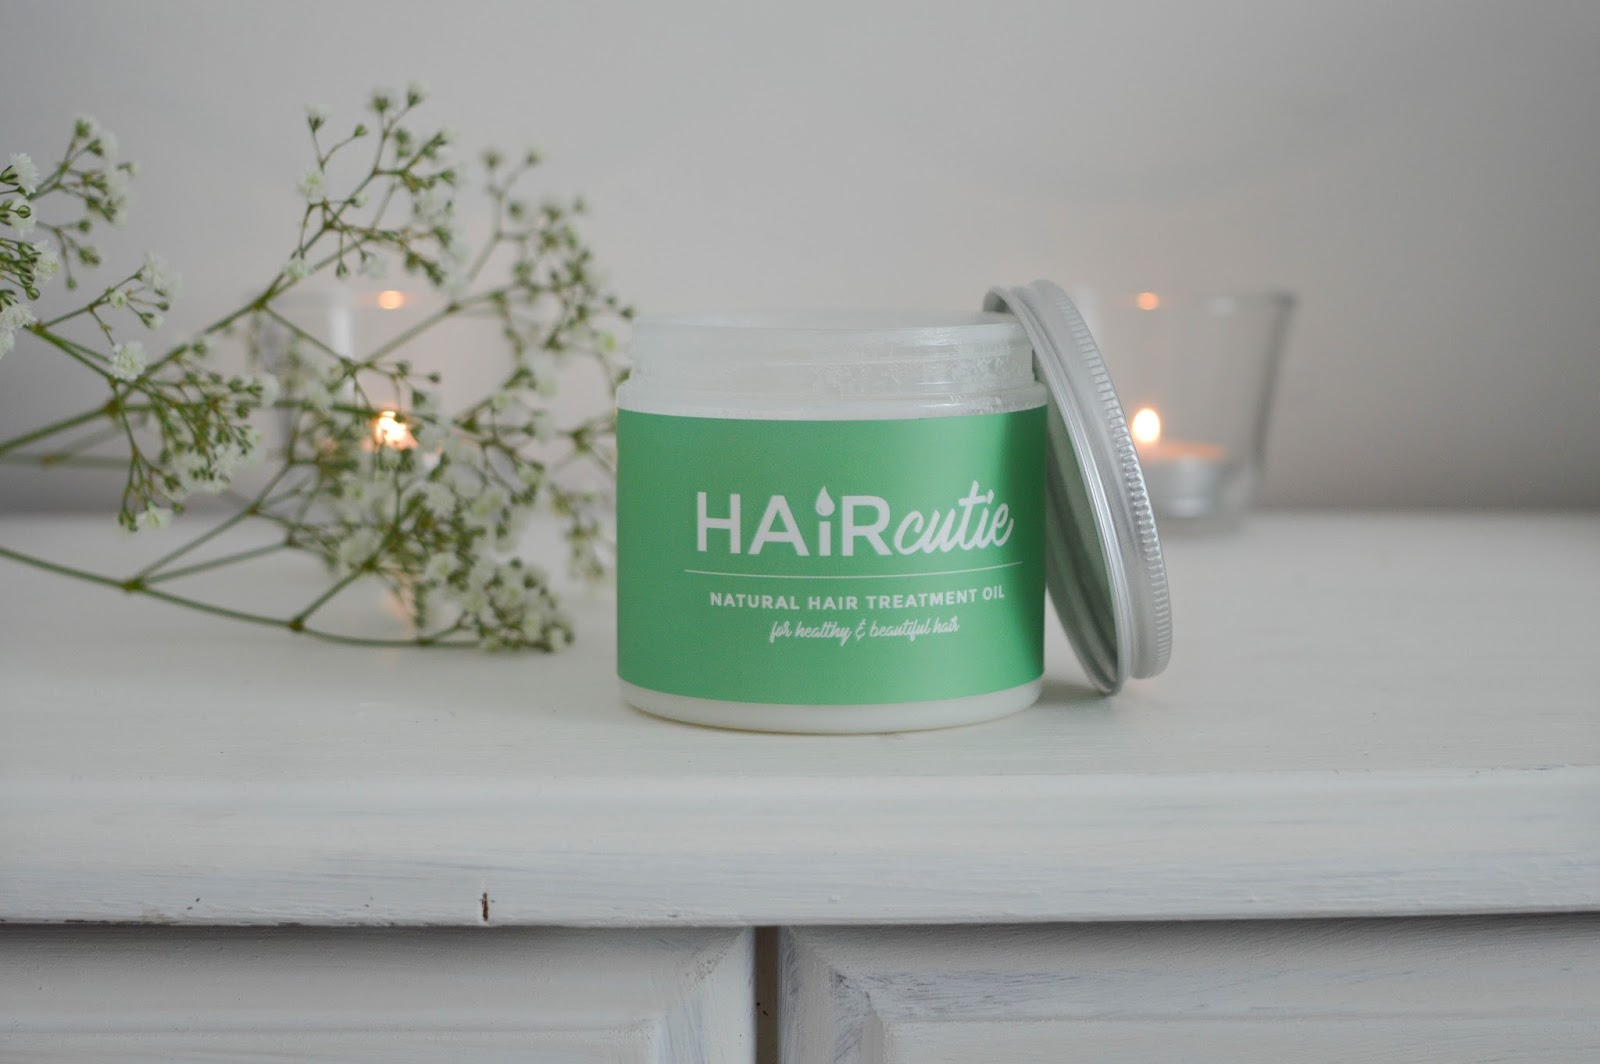 Haircutie Review, hair growth tips, lifestyle blog, UK beauty blog